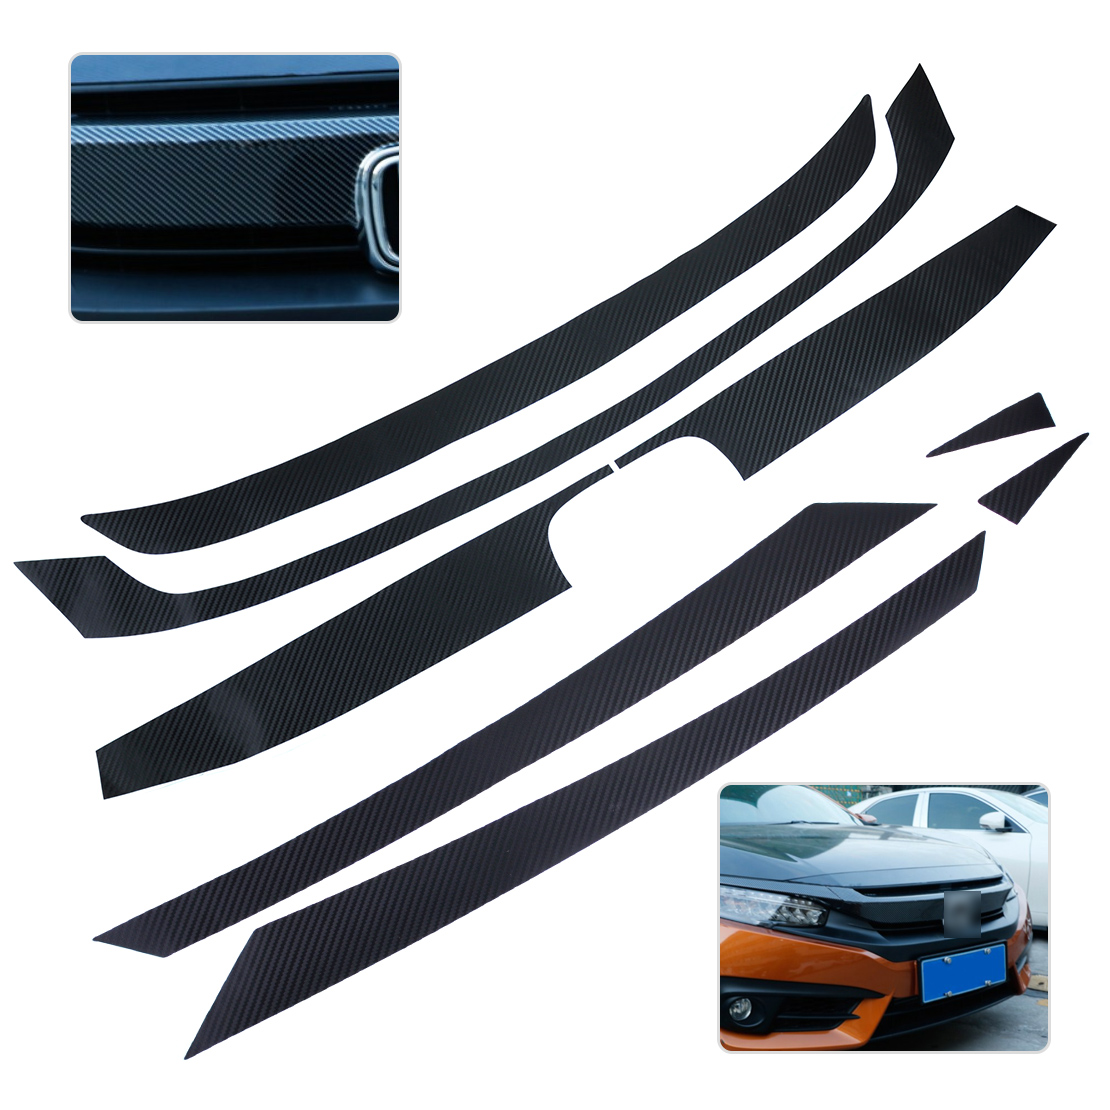 CITALL New Carbon Fiber Texture Bumper Grille Grill Decor Decal Sticker Trim Protector for Honda Civic 2016 best top selling new stylish decal carbon fiber skin sticker for xbox one console